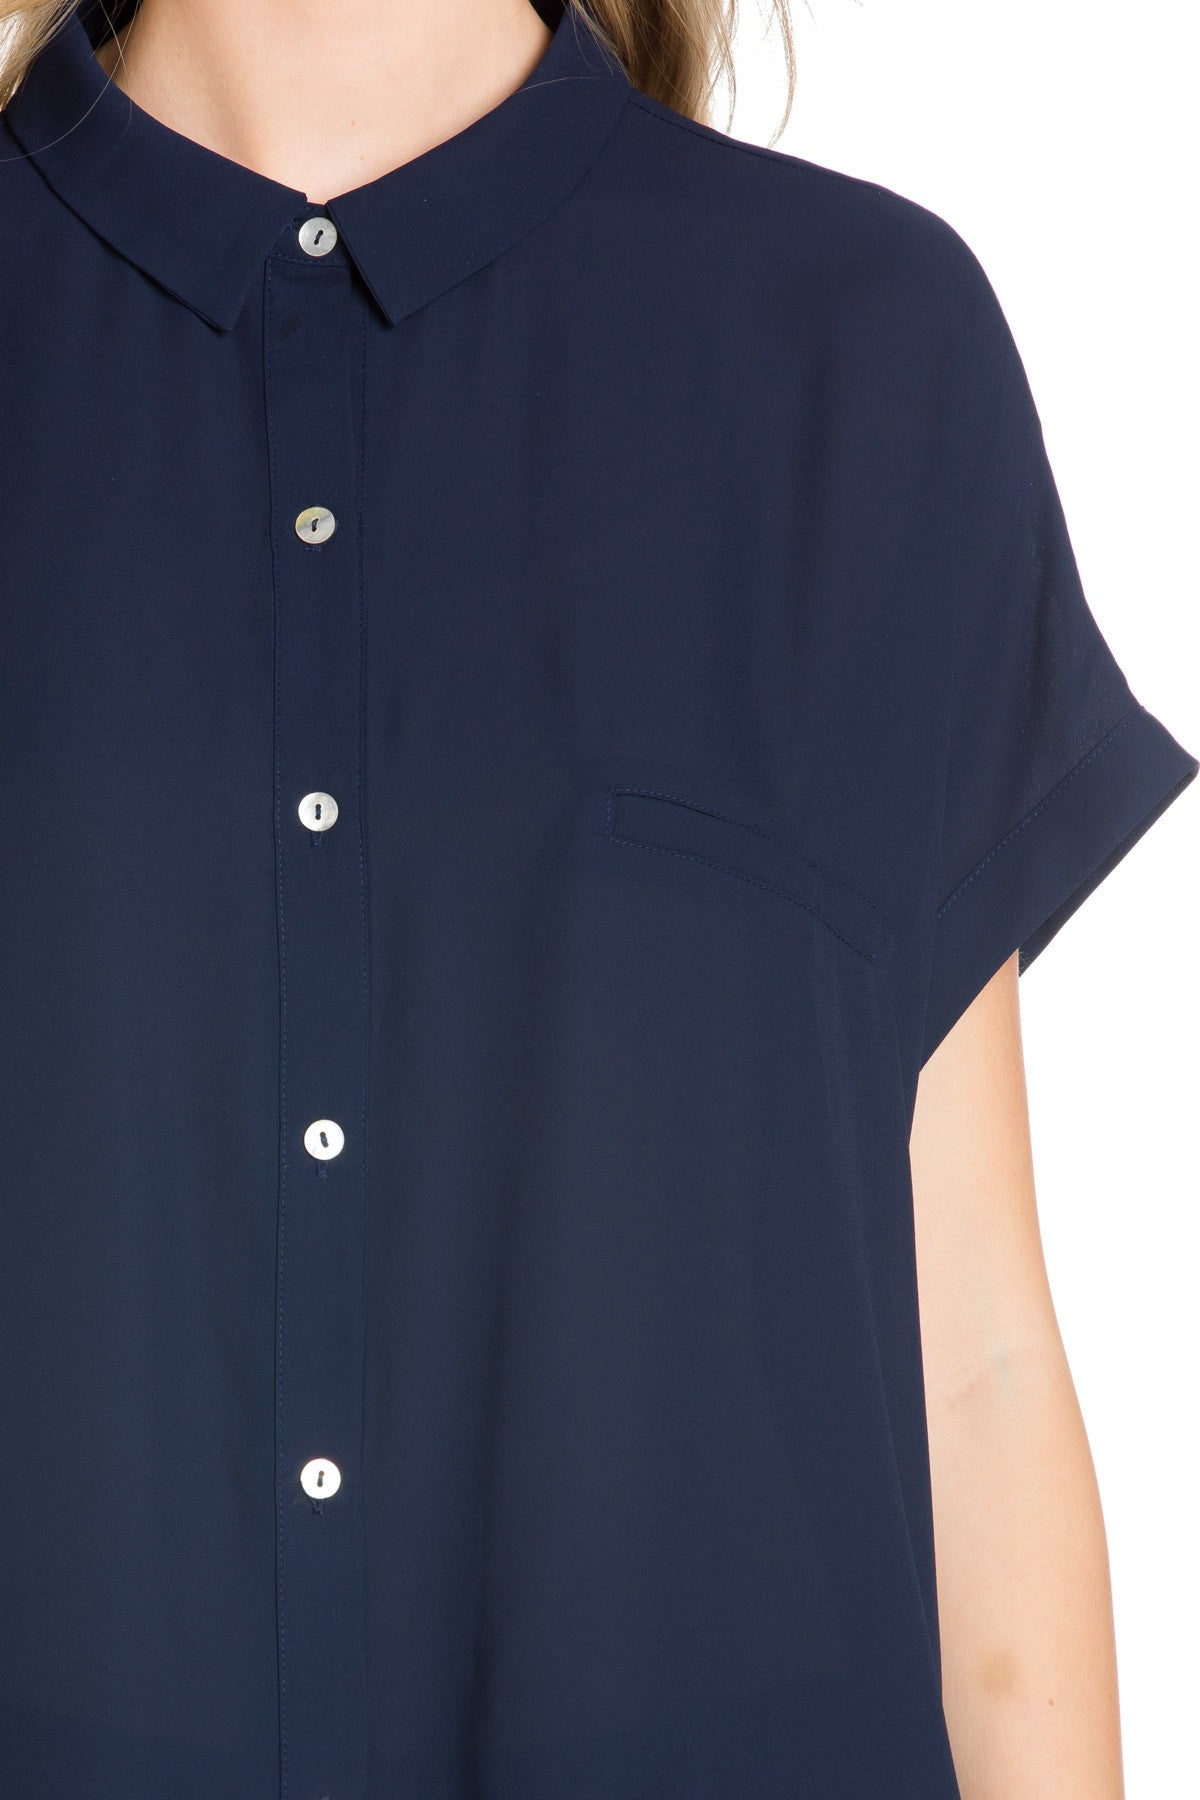 Short Sleeve Longline Button Down Chiffon Top in Midnight Blue ...